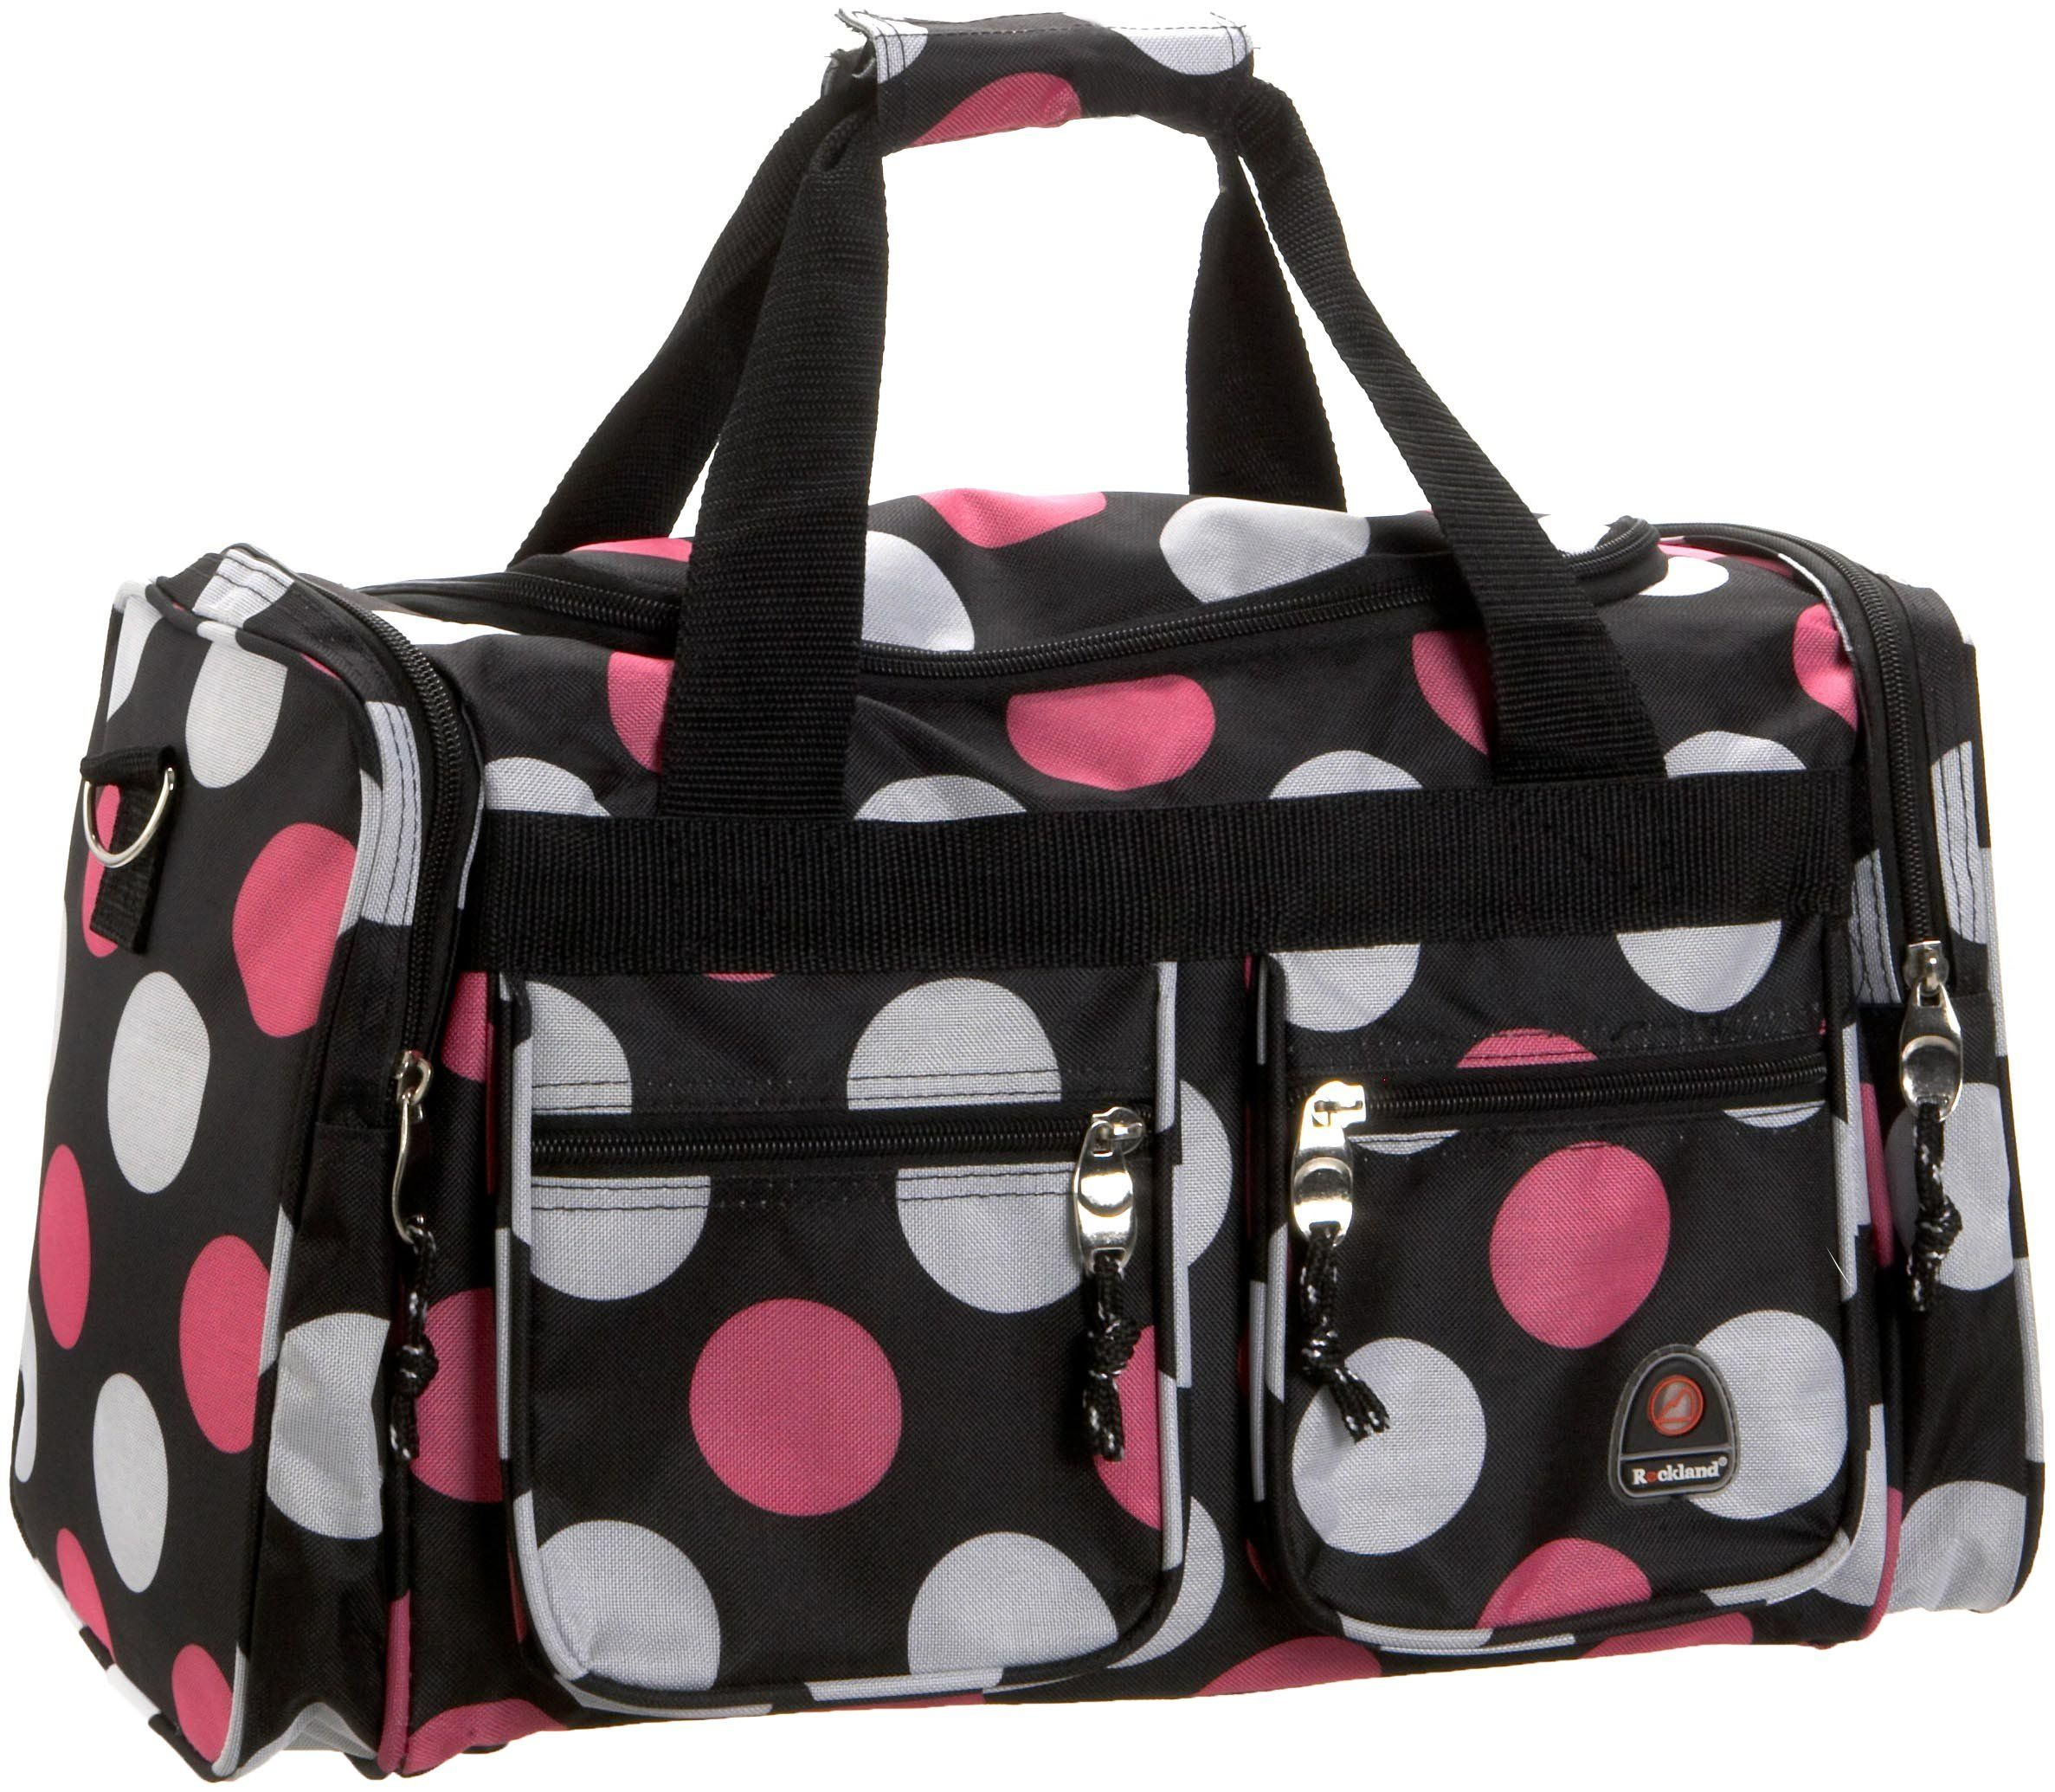 43985d4d05 hospital bag - Rockland Luggage 19 Inch Tote Bag Multi Pink Dots One Size      Click image to examine even more information. (This is an affiliate  link).